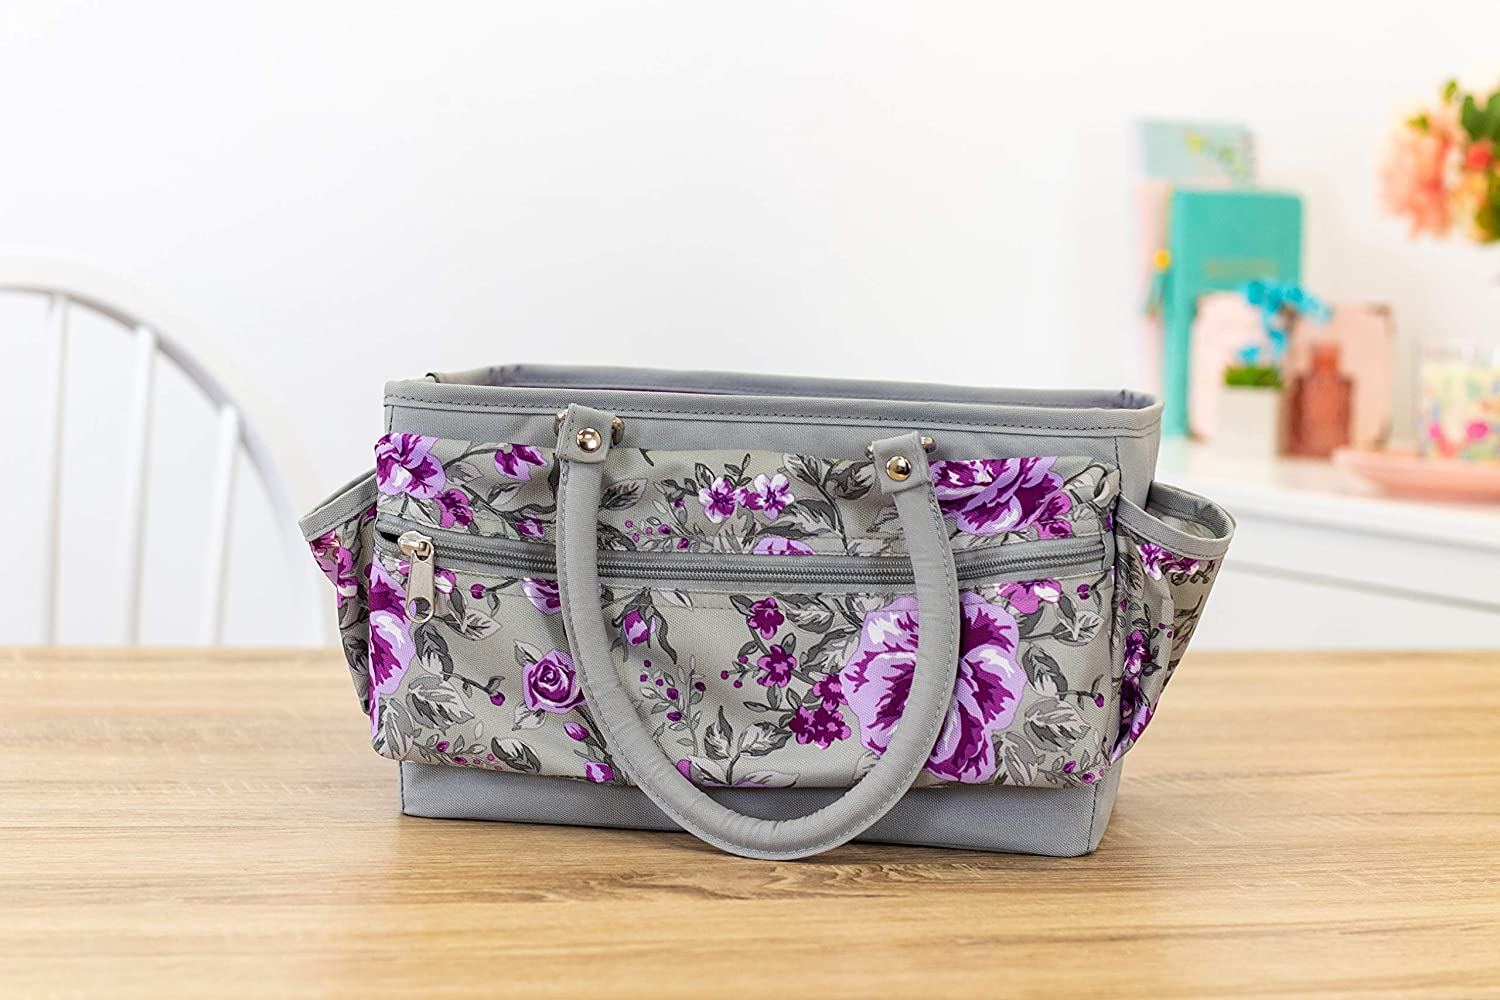 One Size Crafters Companion Deluxe Tote Case-Floral Crafting Storage Bag-Grey /& Purple